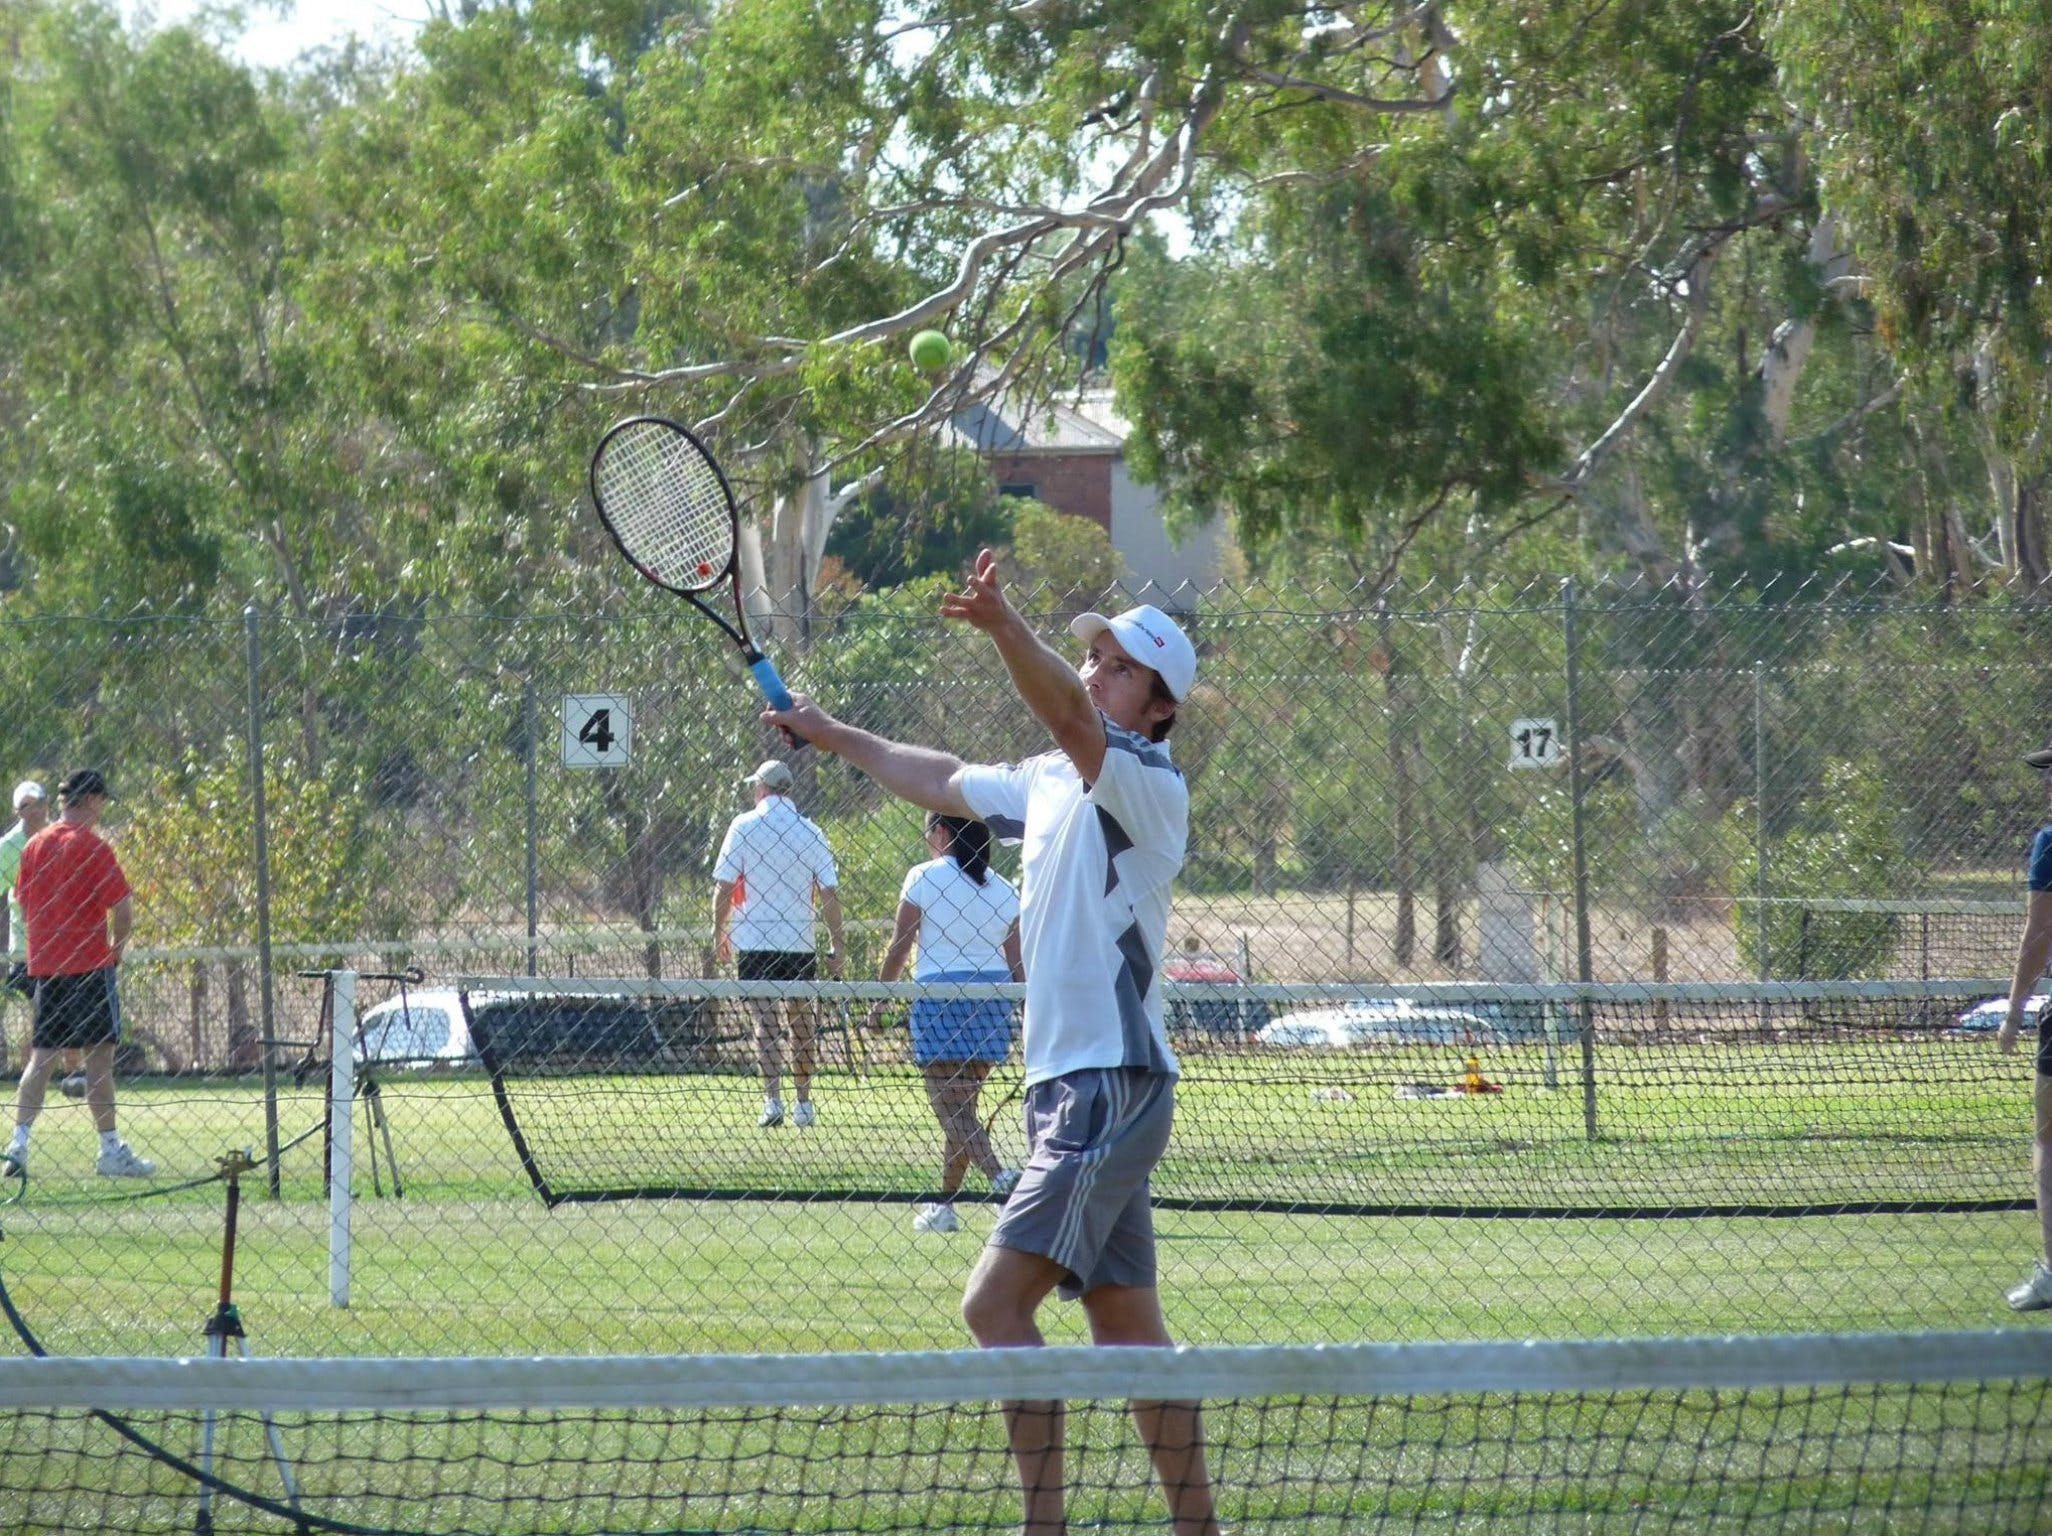 Corowa Easter Lawn Tennis Tournament - Pubs and Clubs